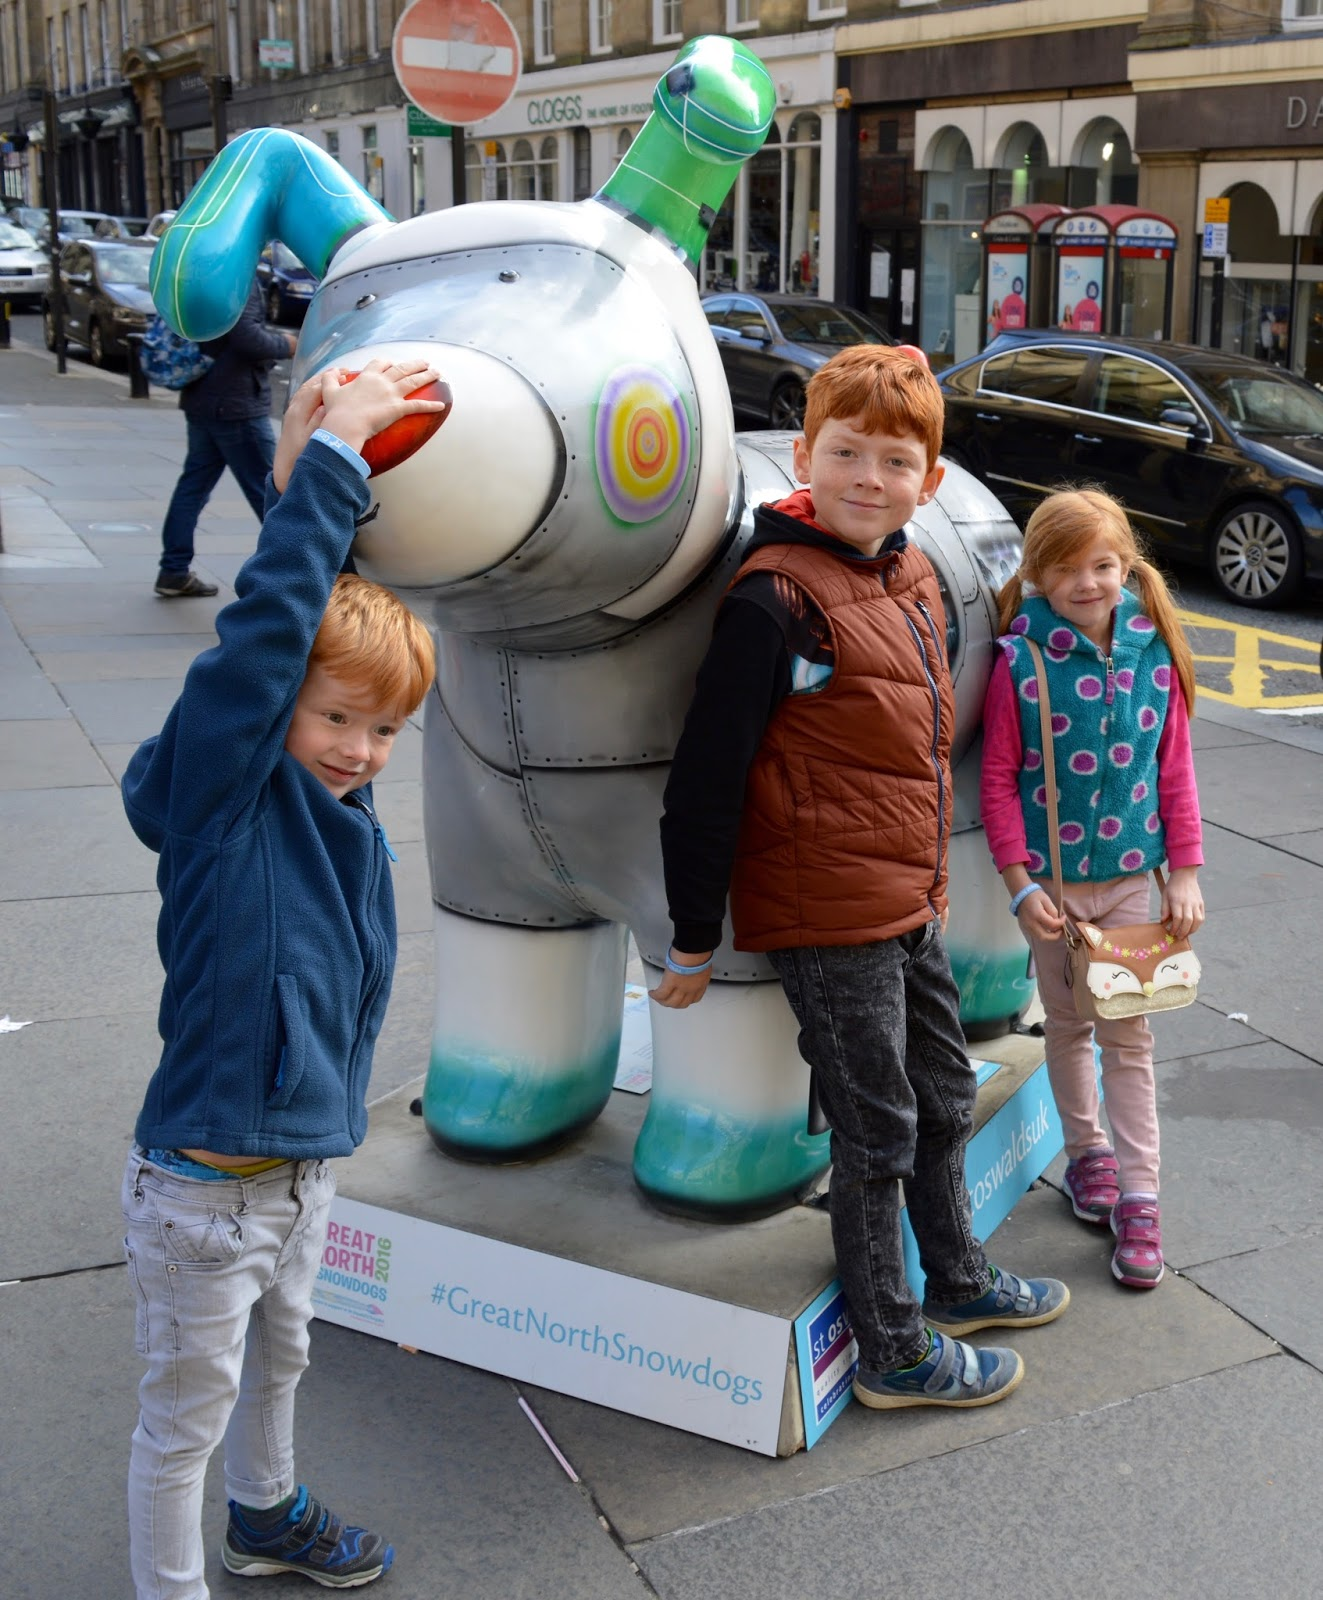 Explore the Great North Snowdogs with Tyne and Wear Metro - Arthur on Grey Street (sponsored by Sanderson& Young) - Essence of the North, Grey Street (sponsored by Northumbrian water)